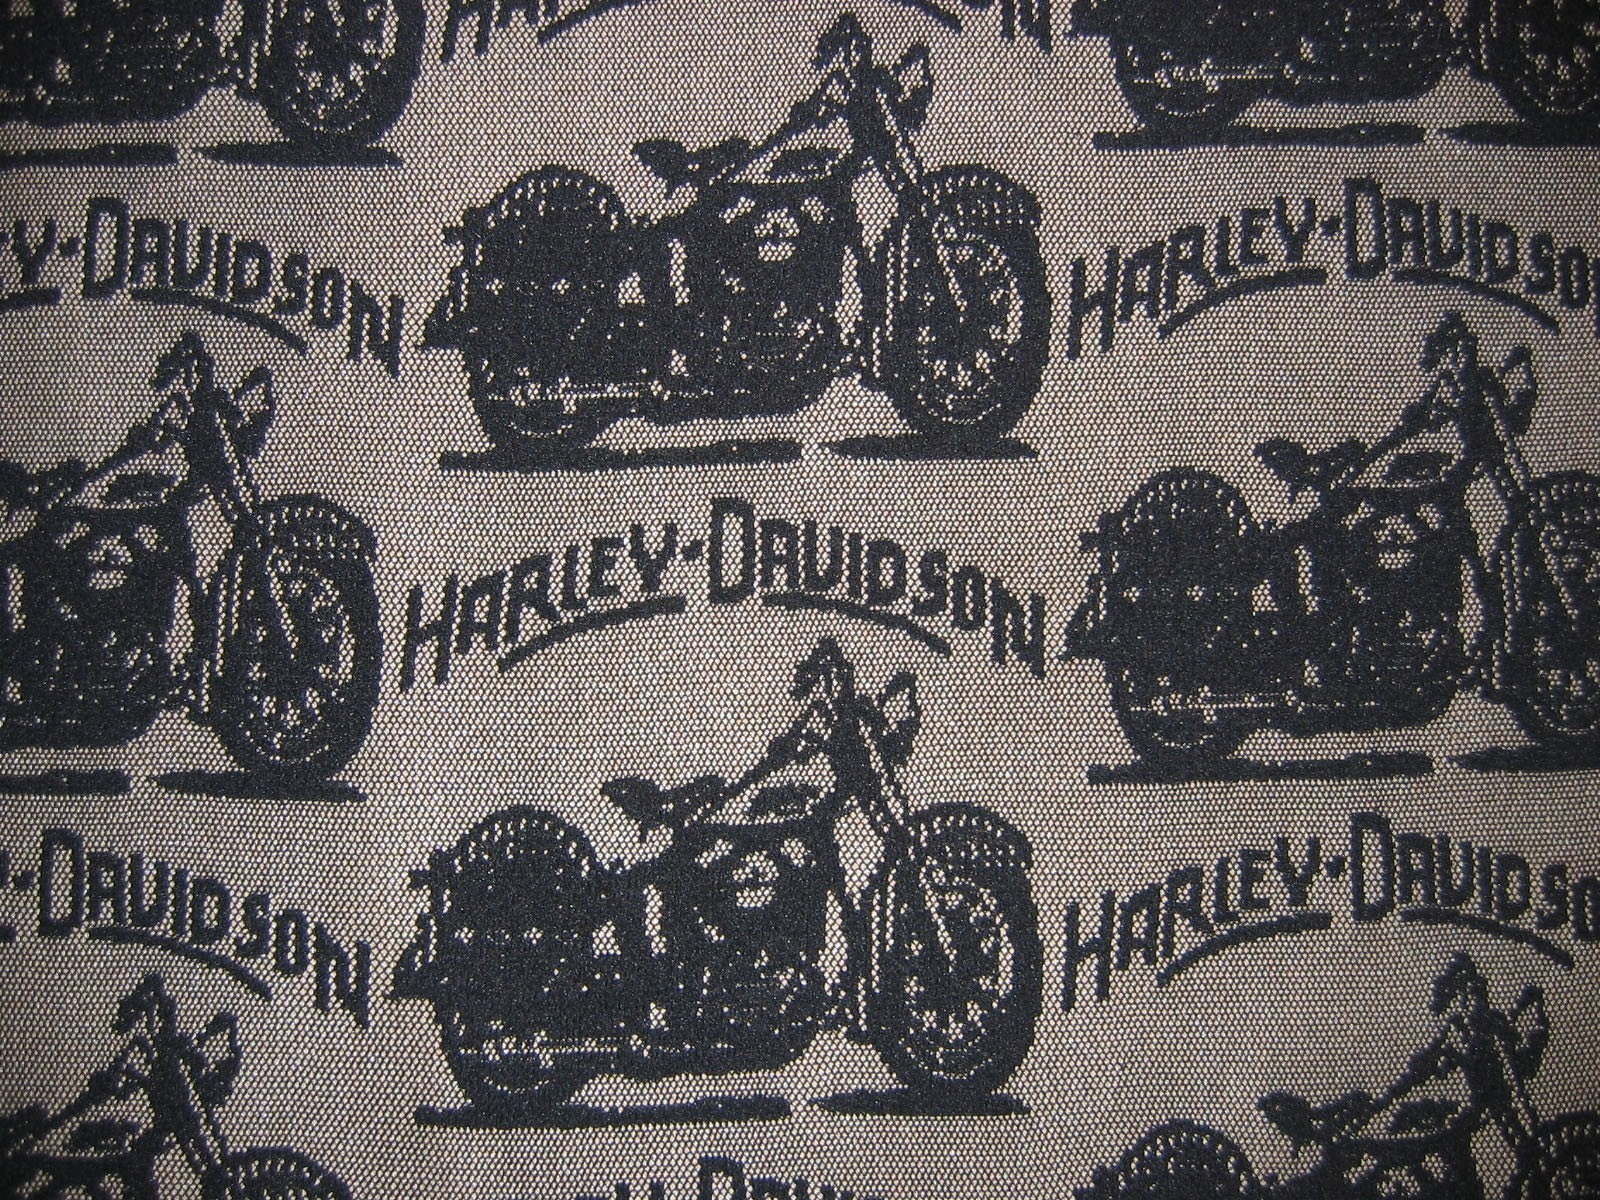 Harley Davidson Stretch Tulle Fabric by CreativeUpscale on Etsy